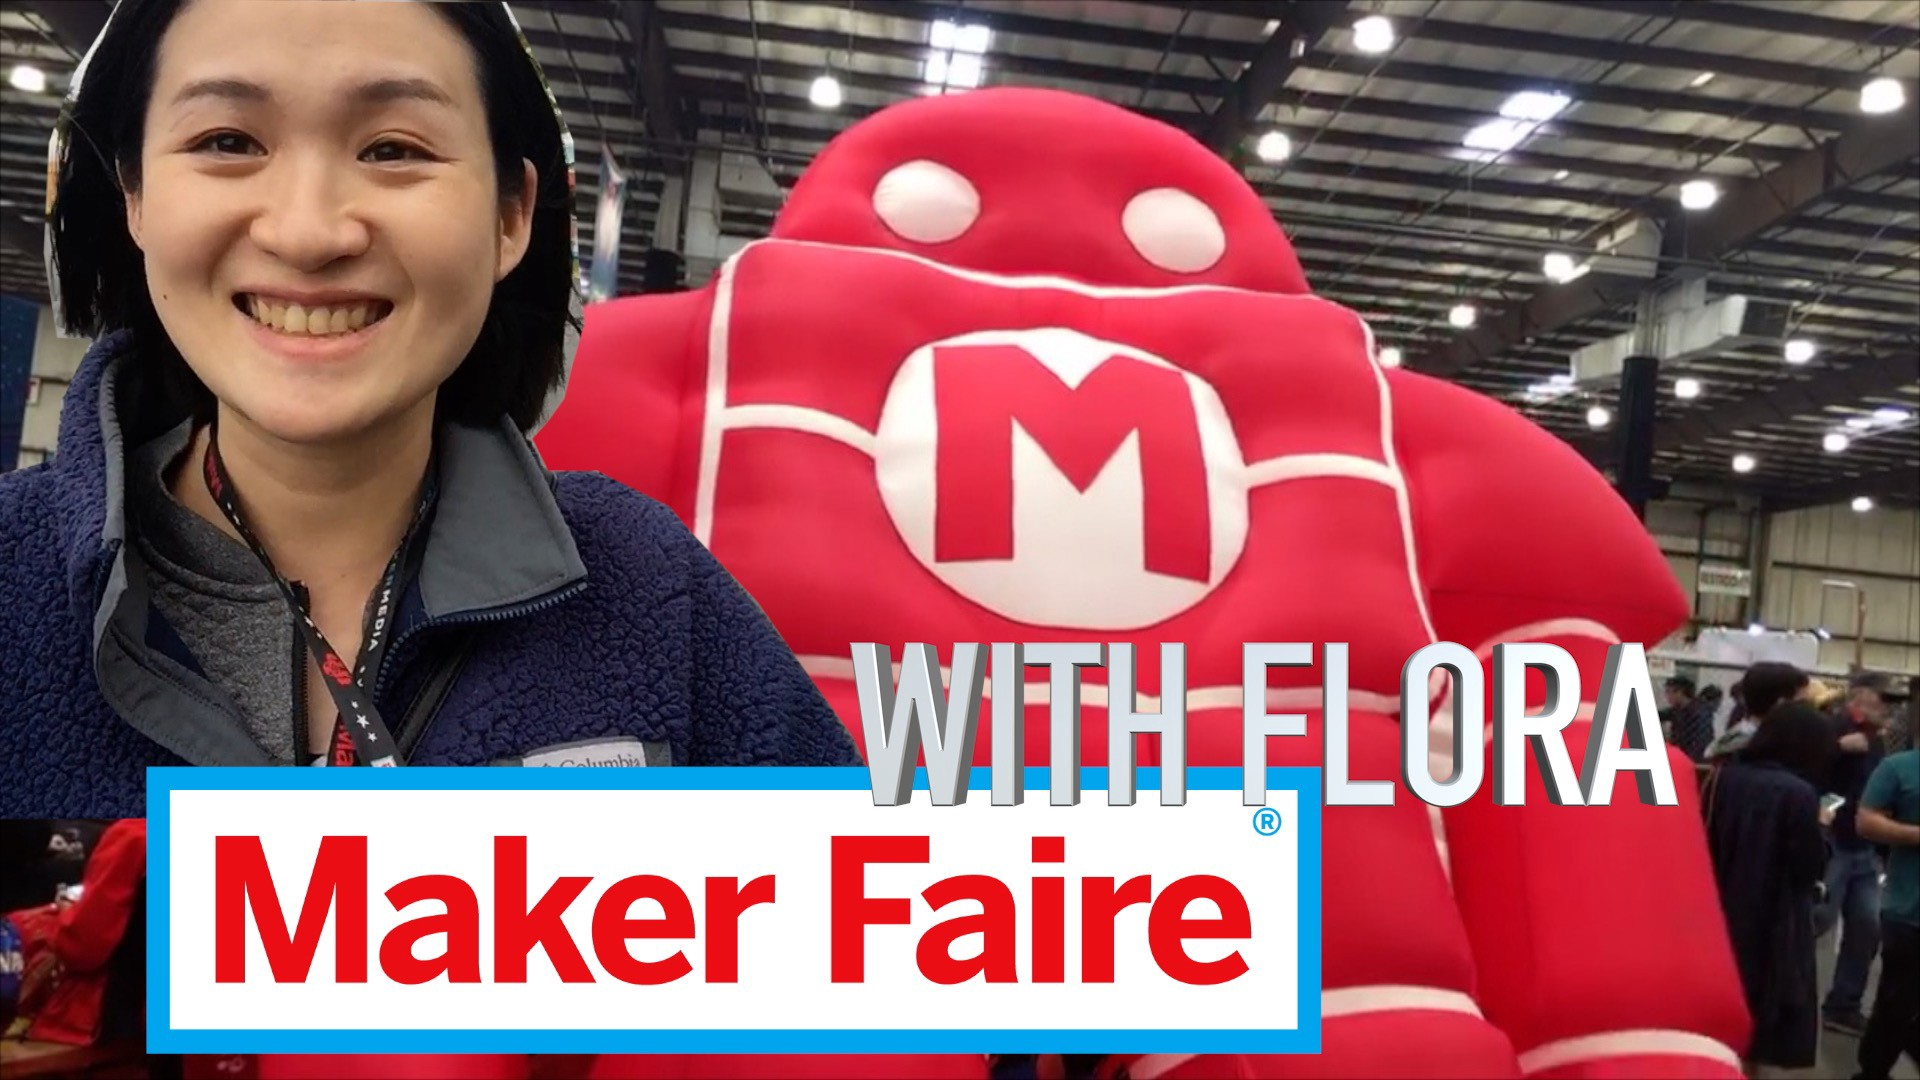 /explore-maker-faire-with-me-5-min-video-cbd61ec03bd3 feature image